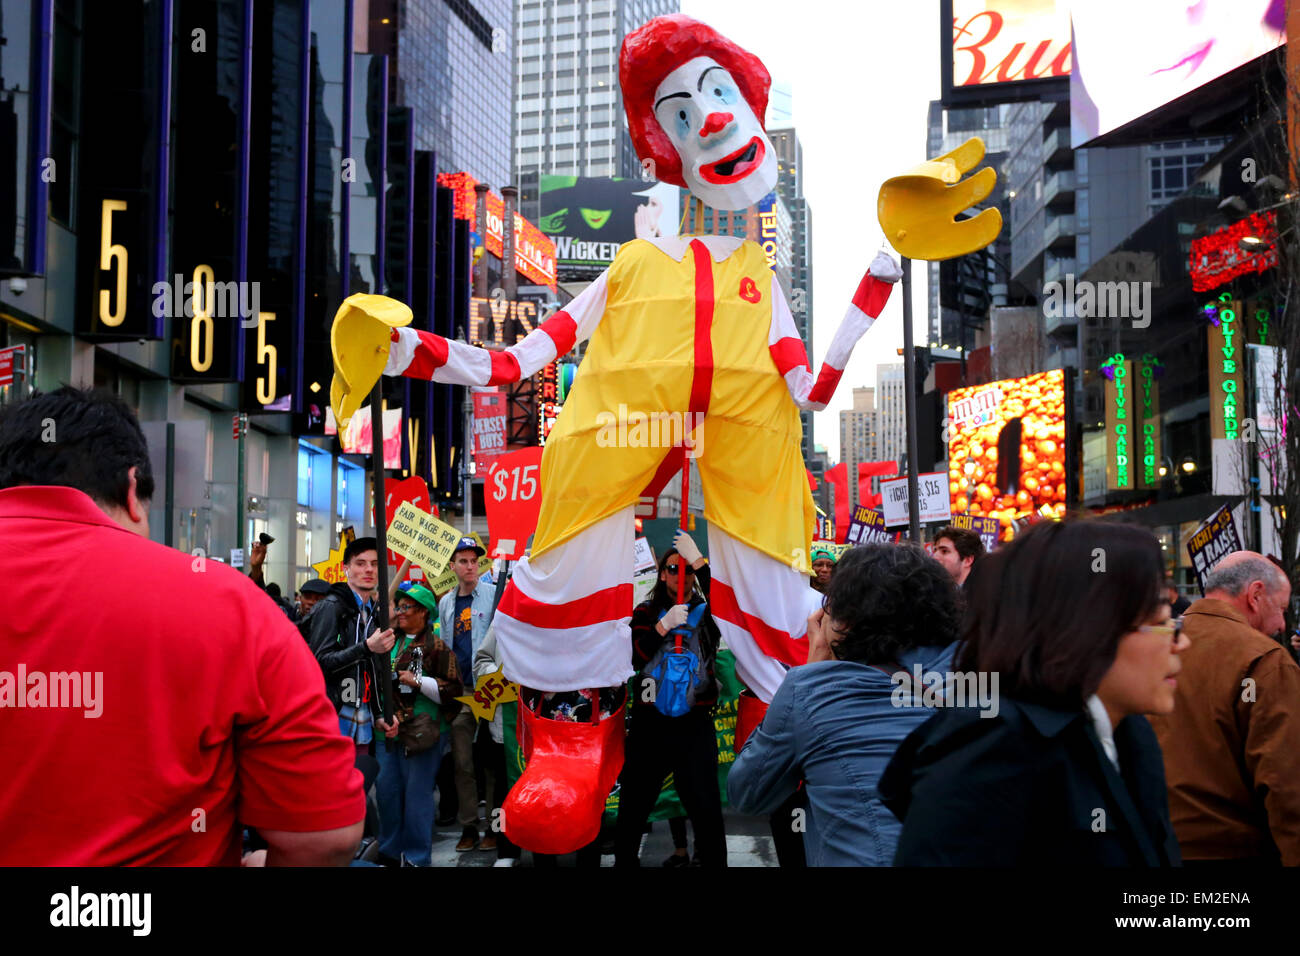 Activists parade a large 'Ronnie McDonalds' puppet at a Fight for $15 demonstration in Times Square - Stock Image